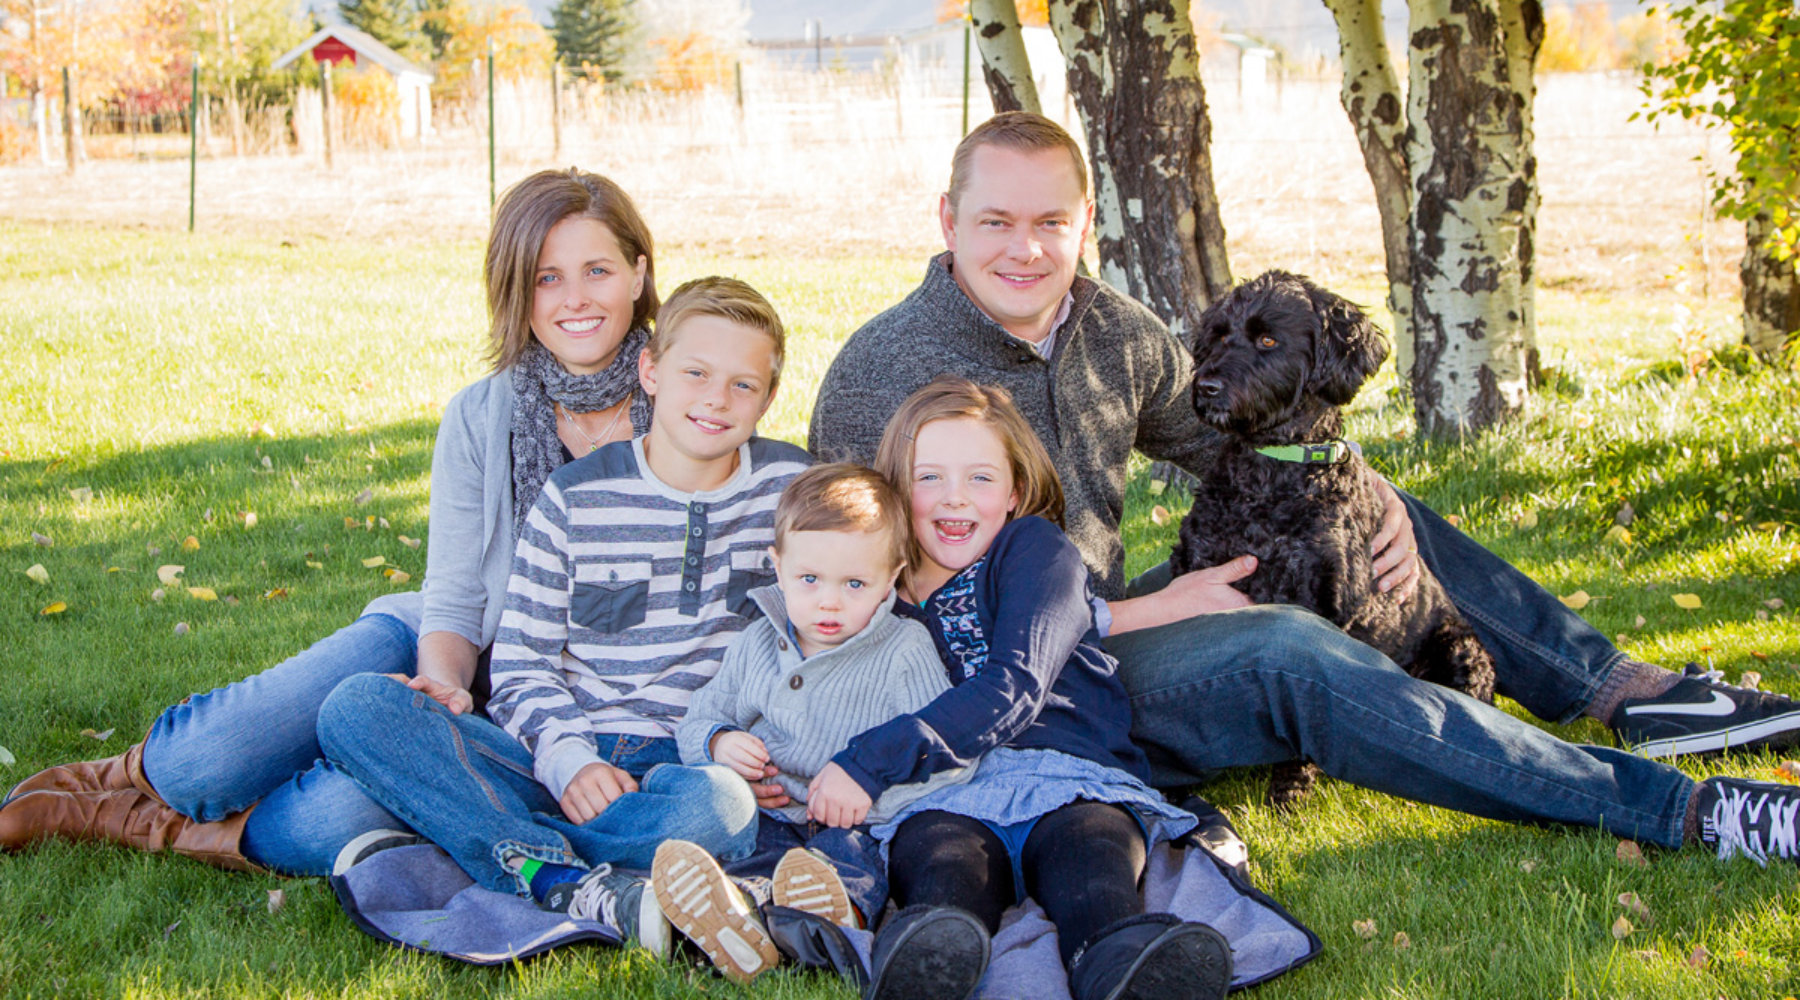 Bozeman_Photographer_family_portrait